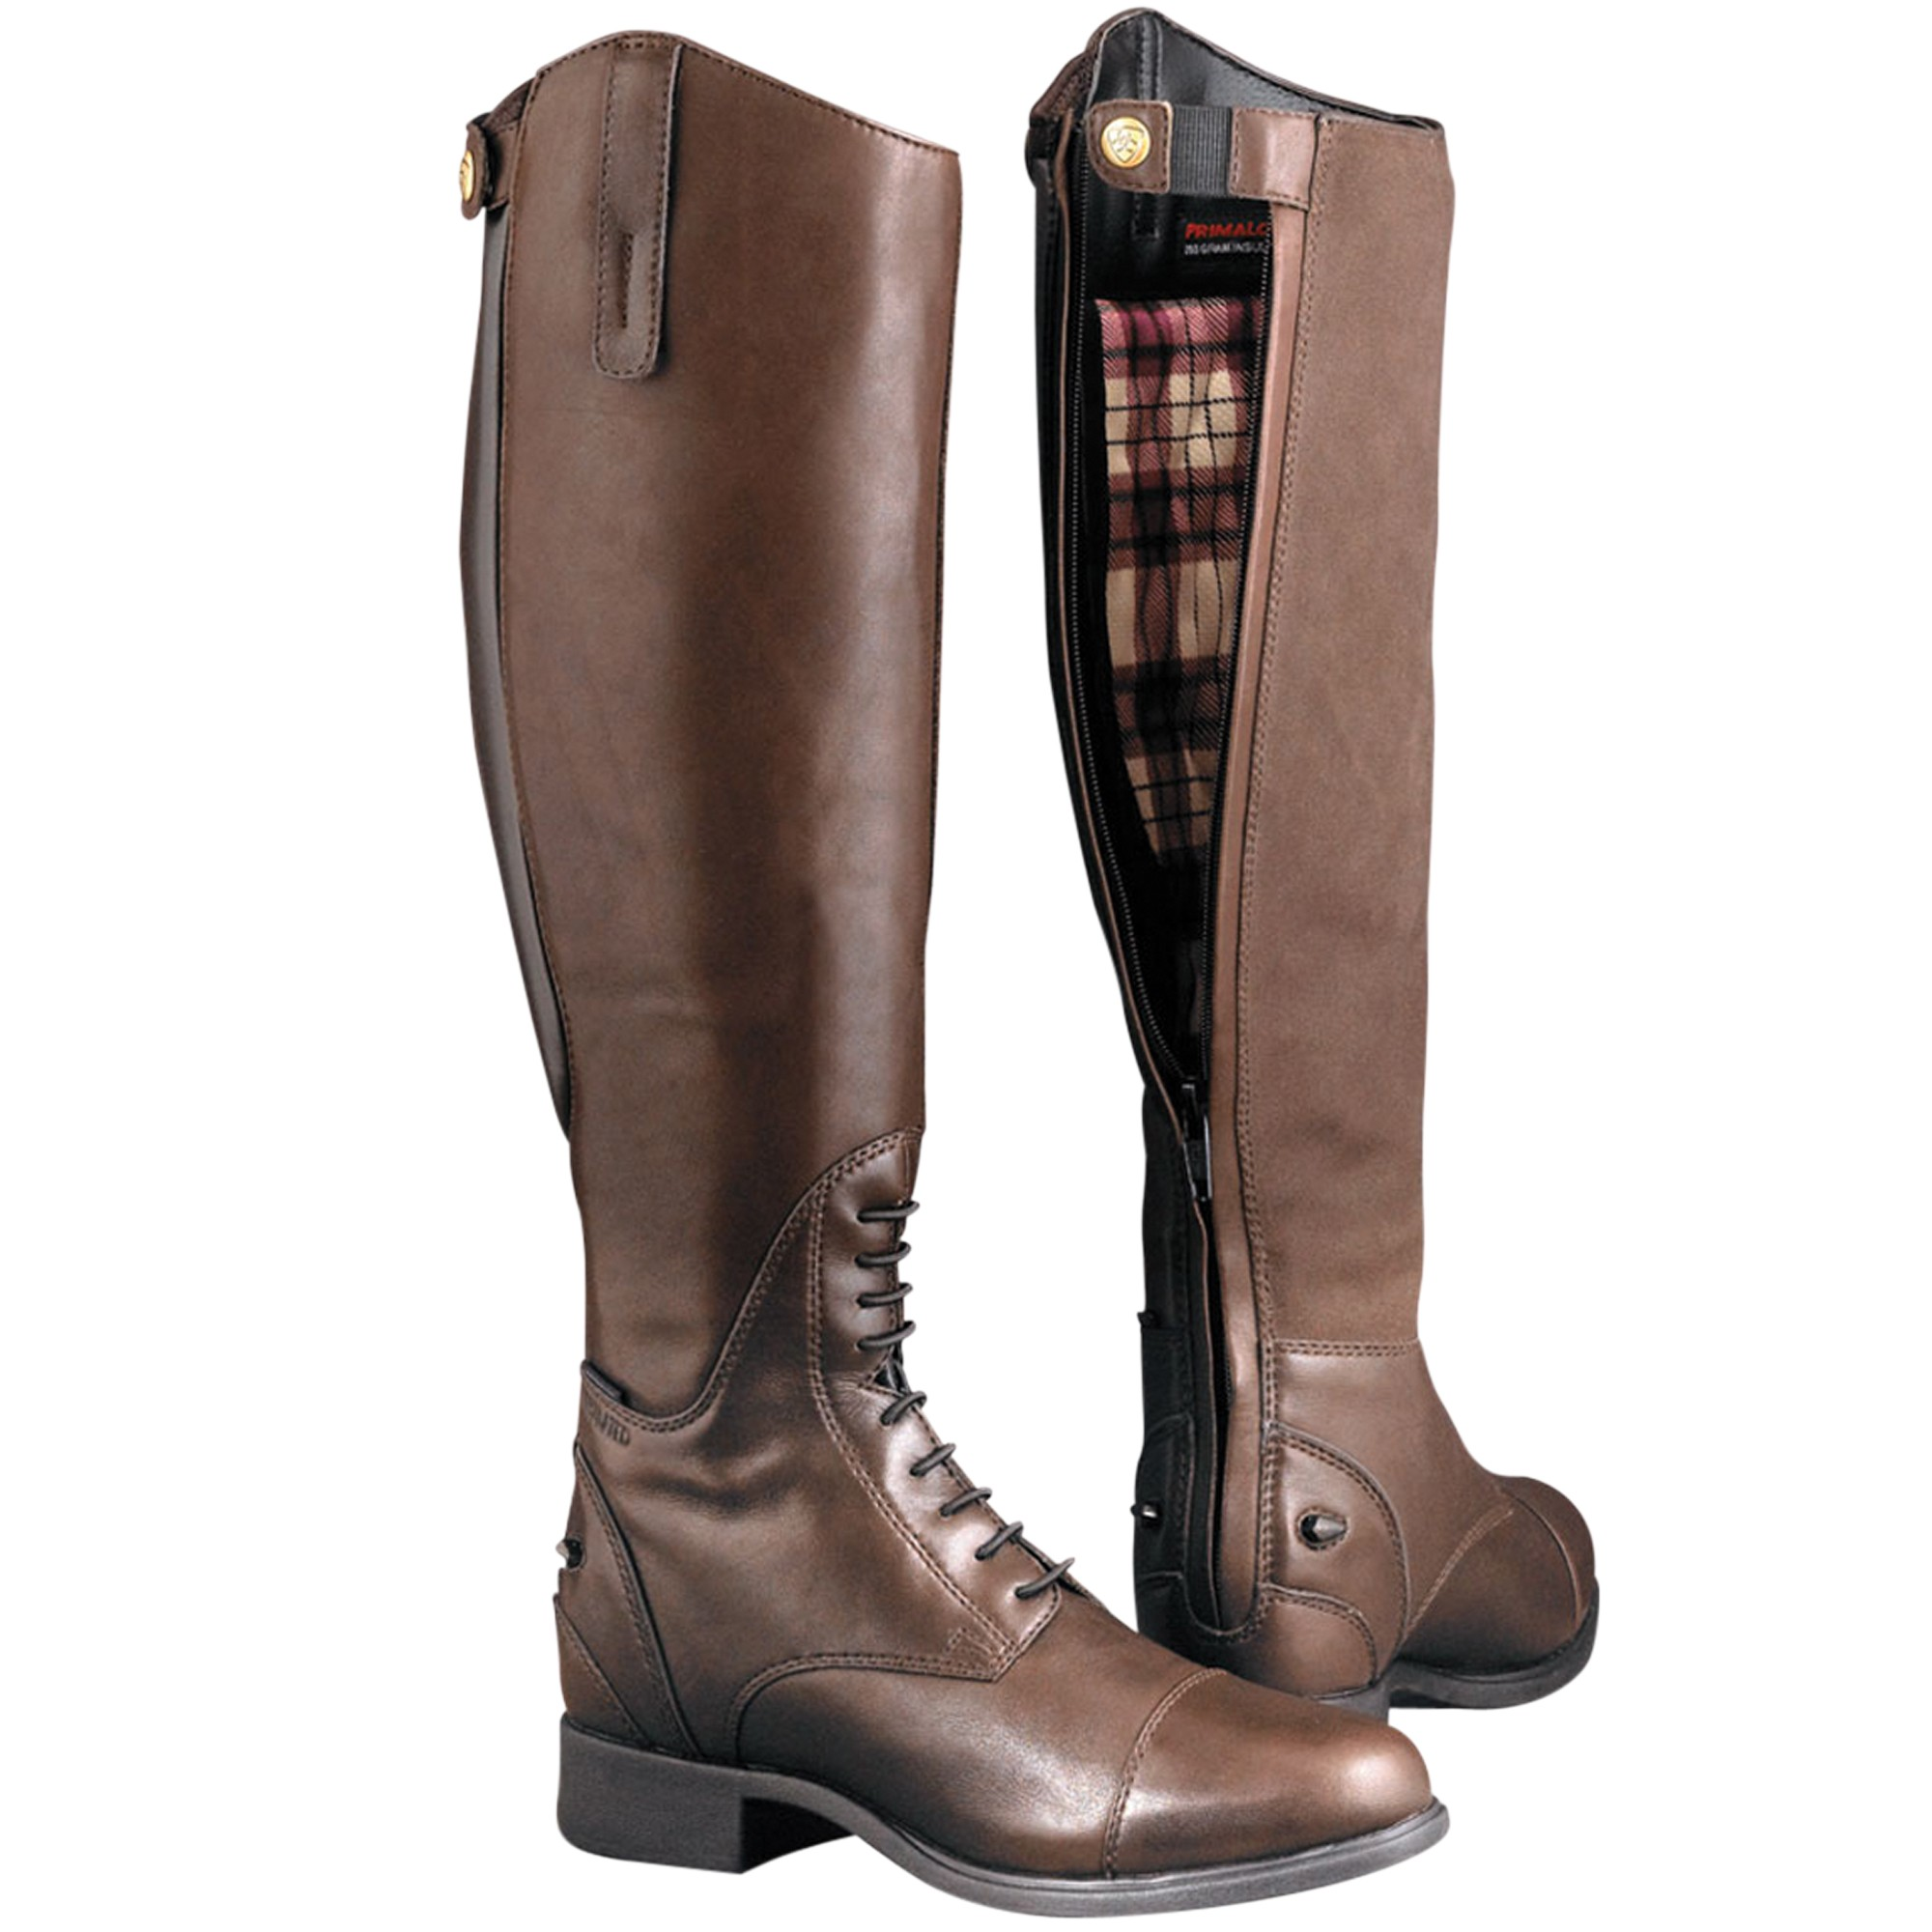 Ariat Bromont Tall Boots | Reviews | The Gaitpost